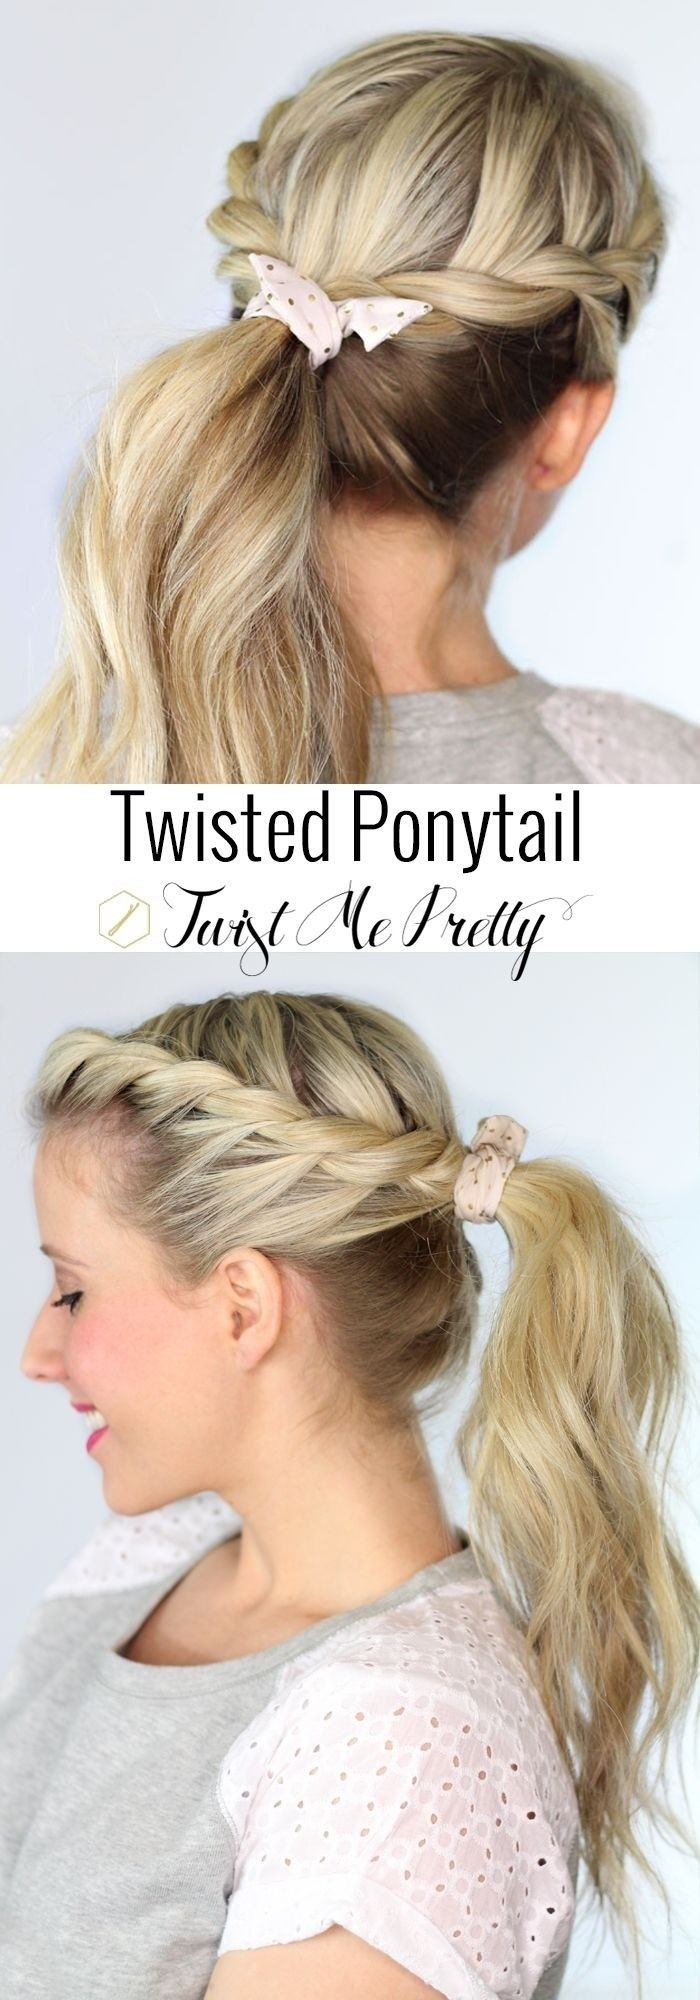 Twisted Ponytail for Long Hair